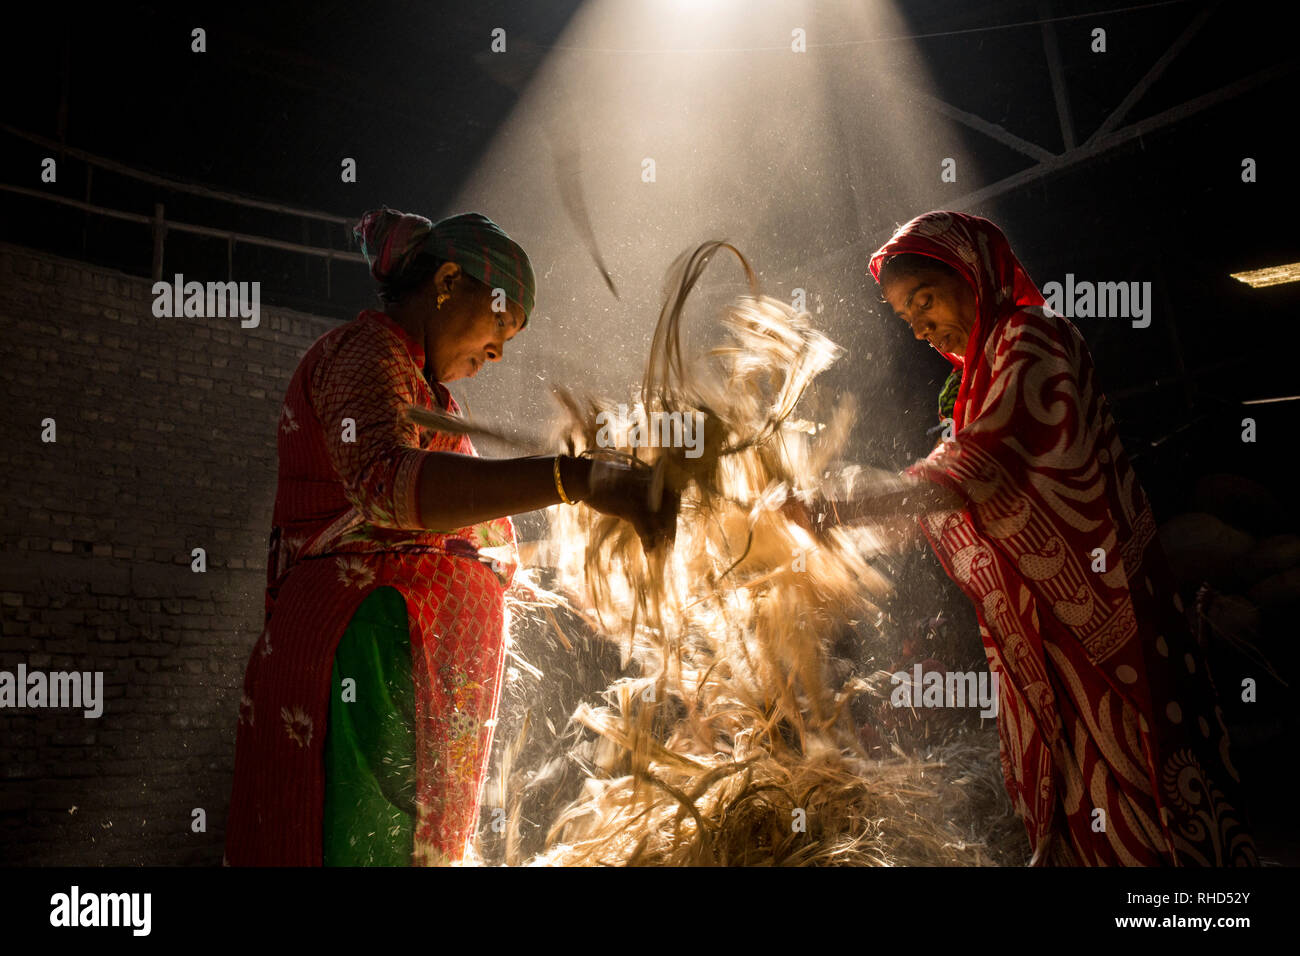 DHAKA, BANGLADESH - JANUARY 24 : Women working in dust environmentinside at jute processing mill near Dhaka, Bangladesh on January 24, 2019. - Stock Image